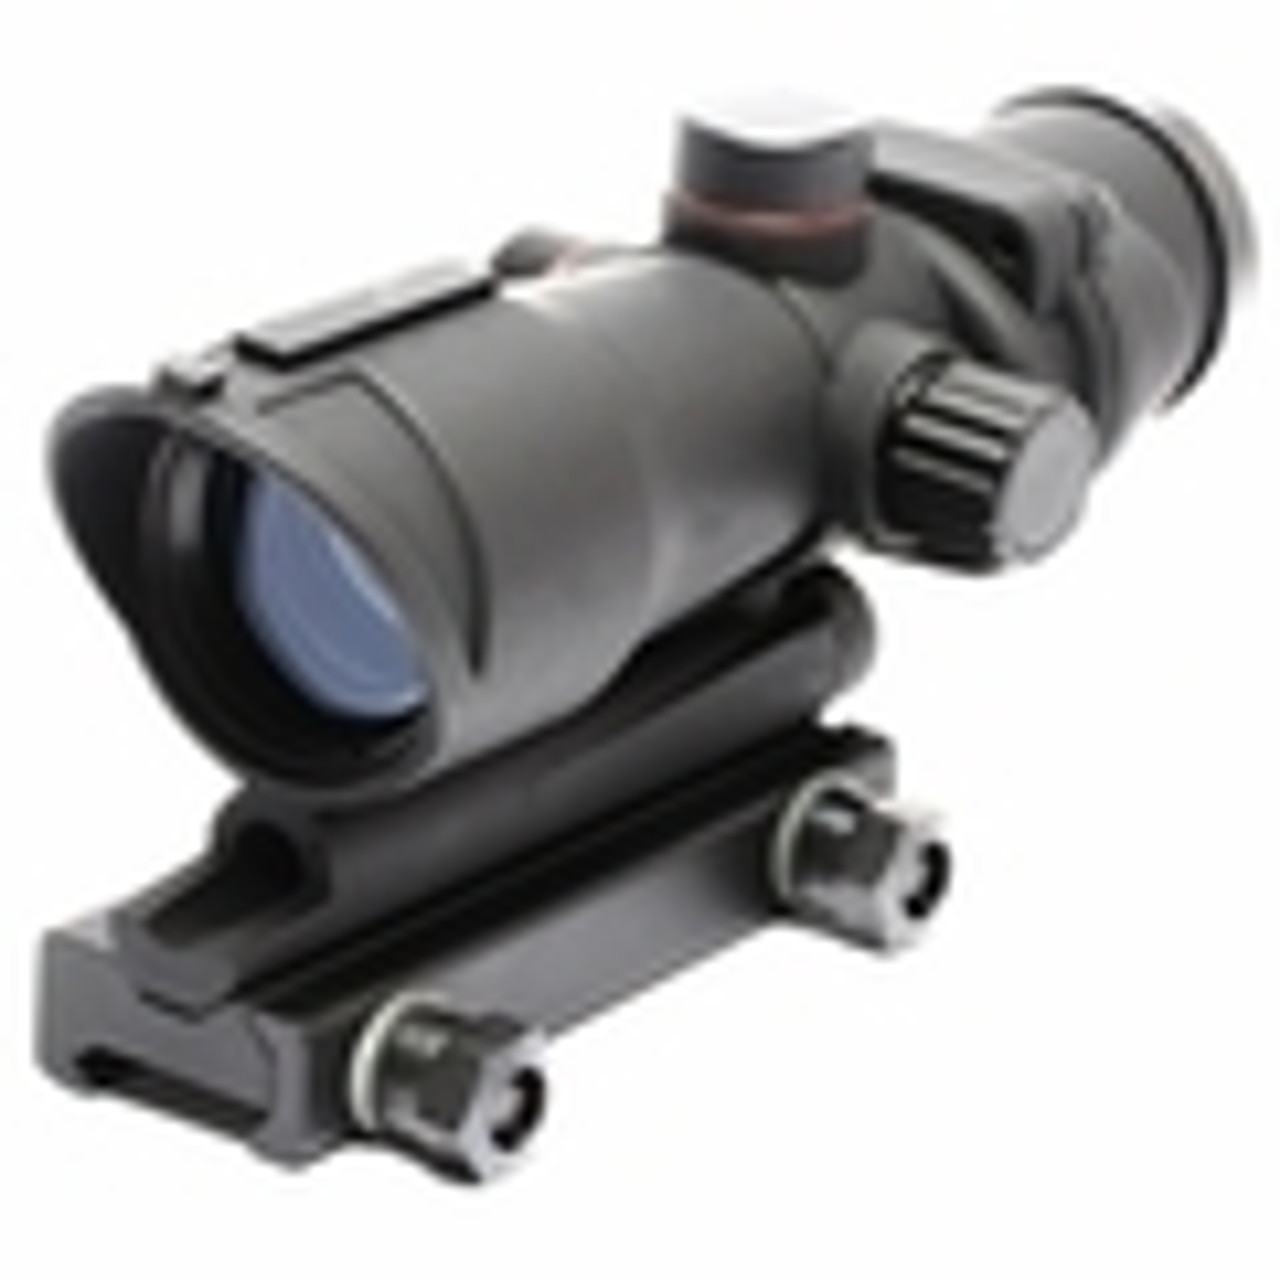 Red Dot & Holographic Sights